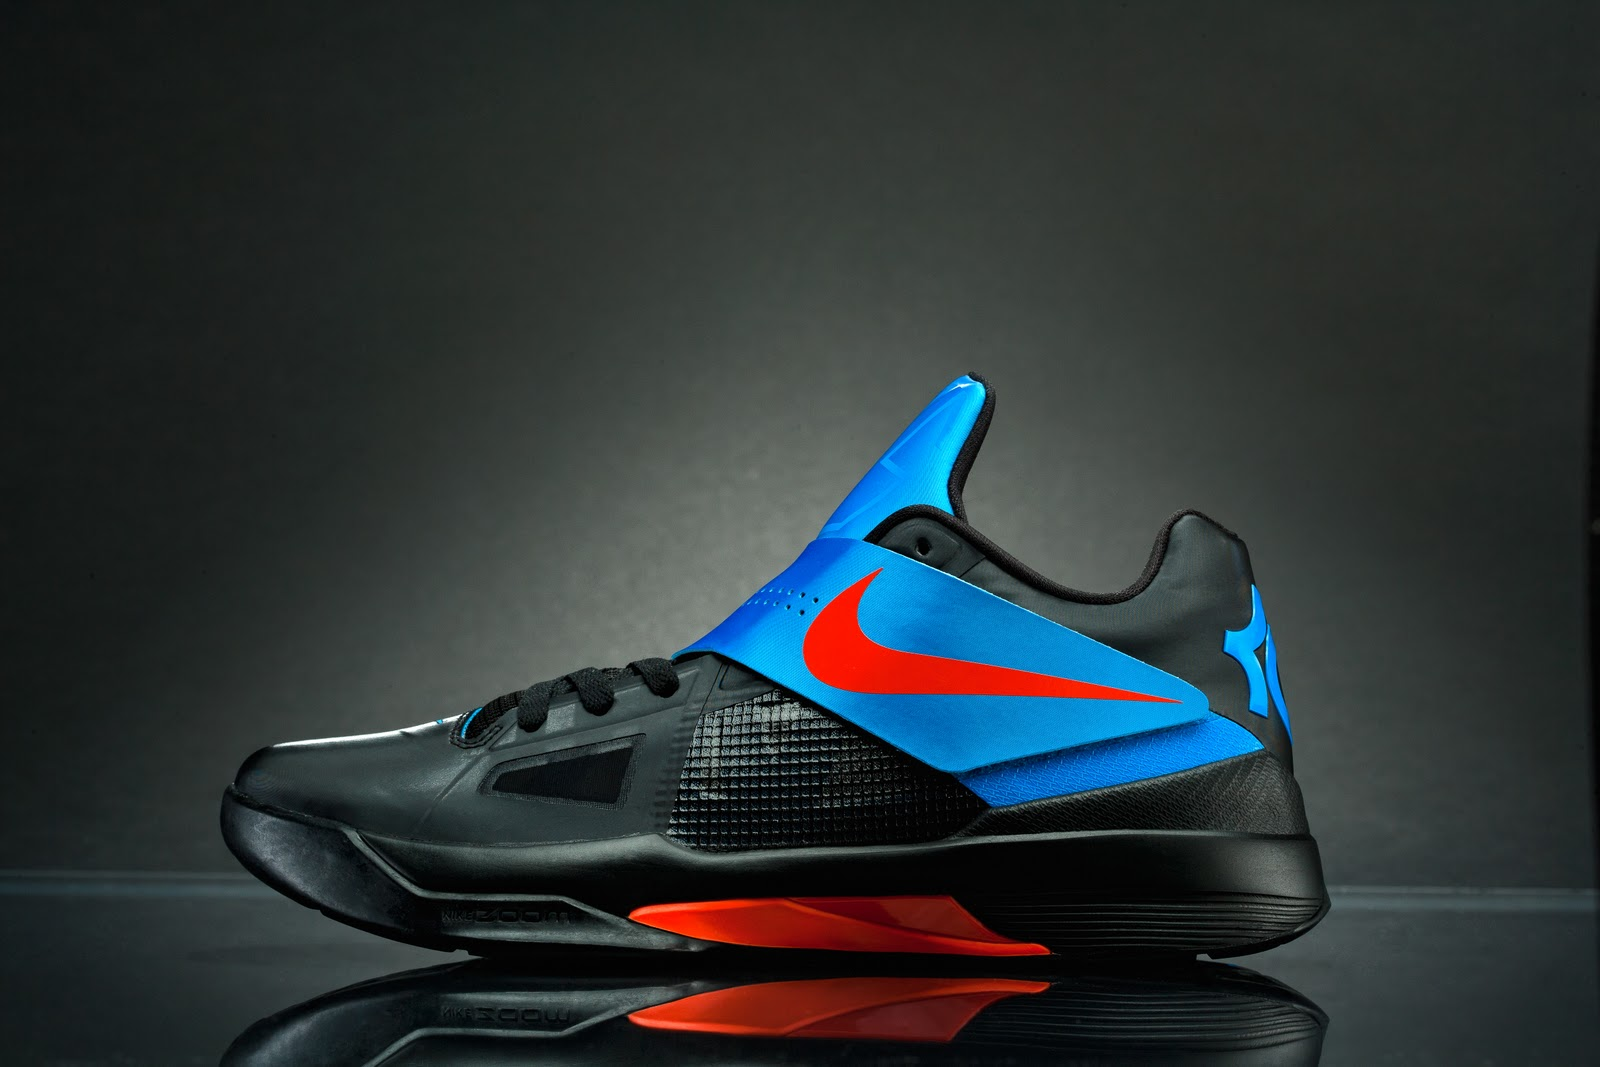 snkrology a soft spot nike zoom kd iv officially unveiled